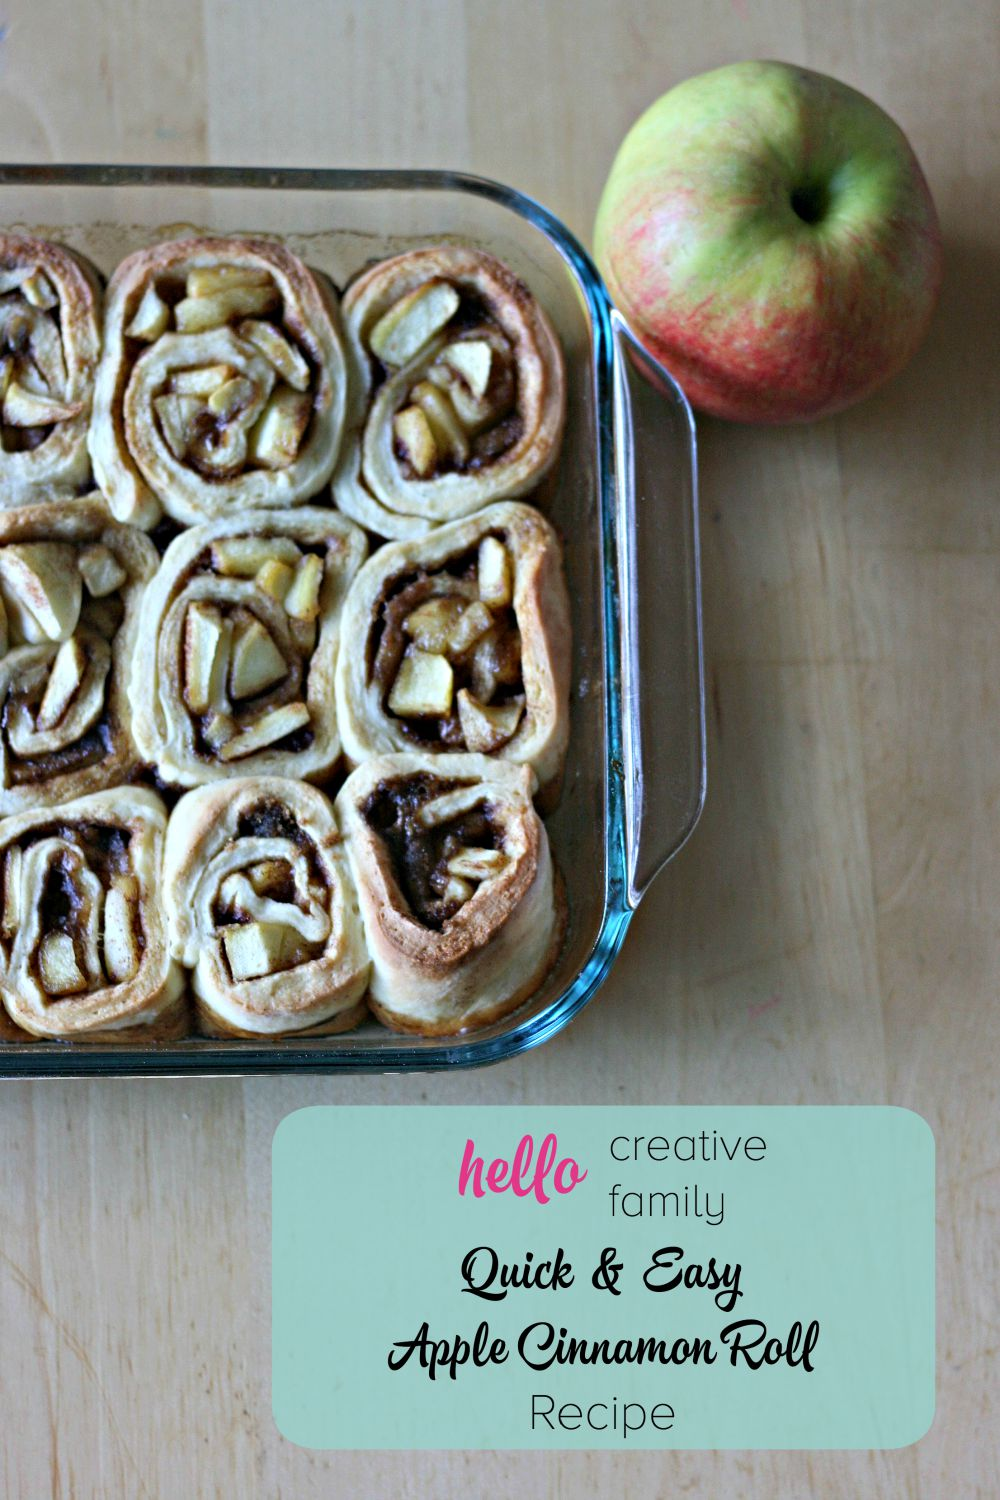 Looking for a quick & easy apple cinnamon roll recipe This is the recipe for you- No yeast required in this dough means in minutes it's in the oven.